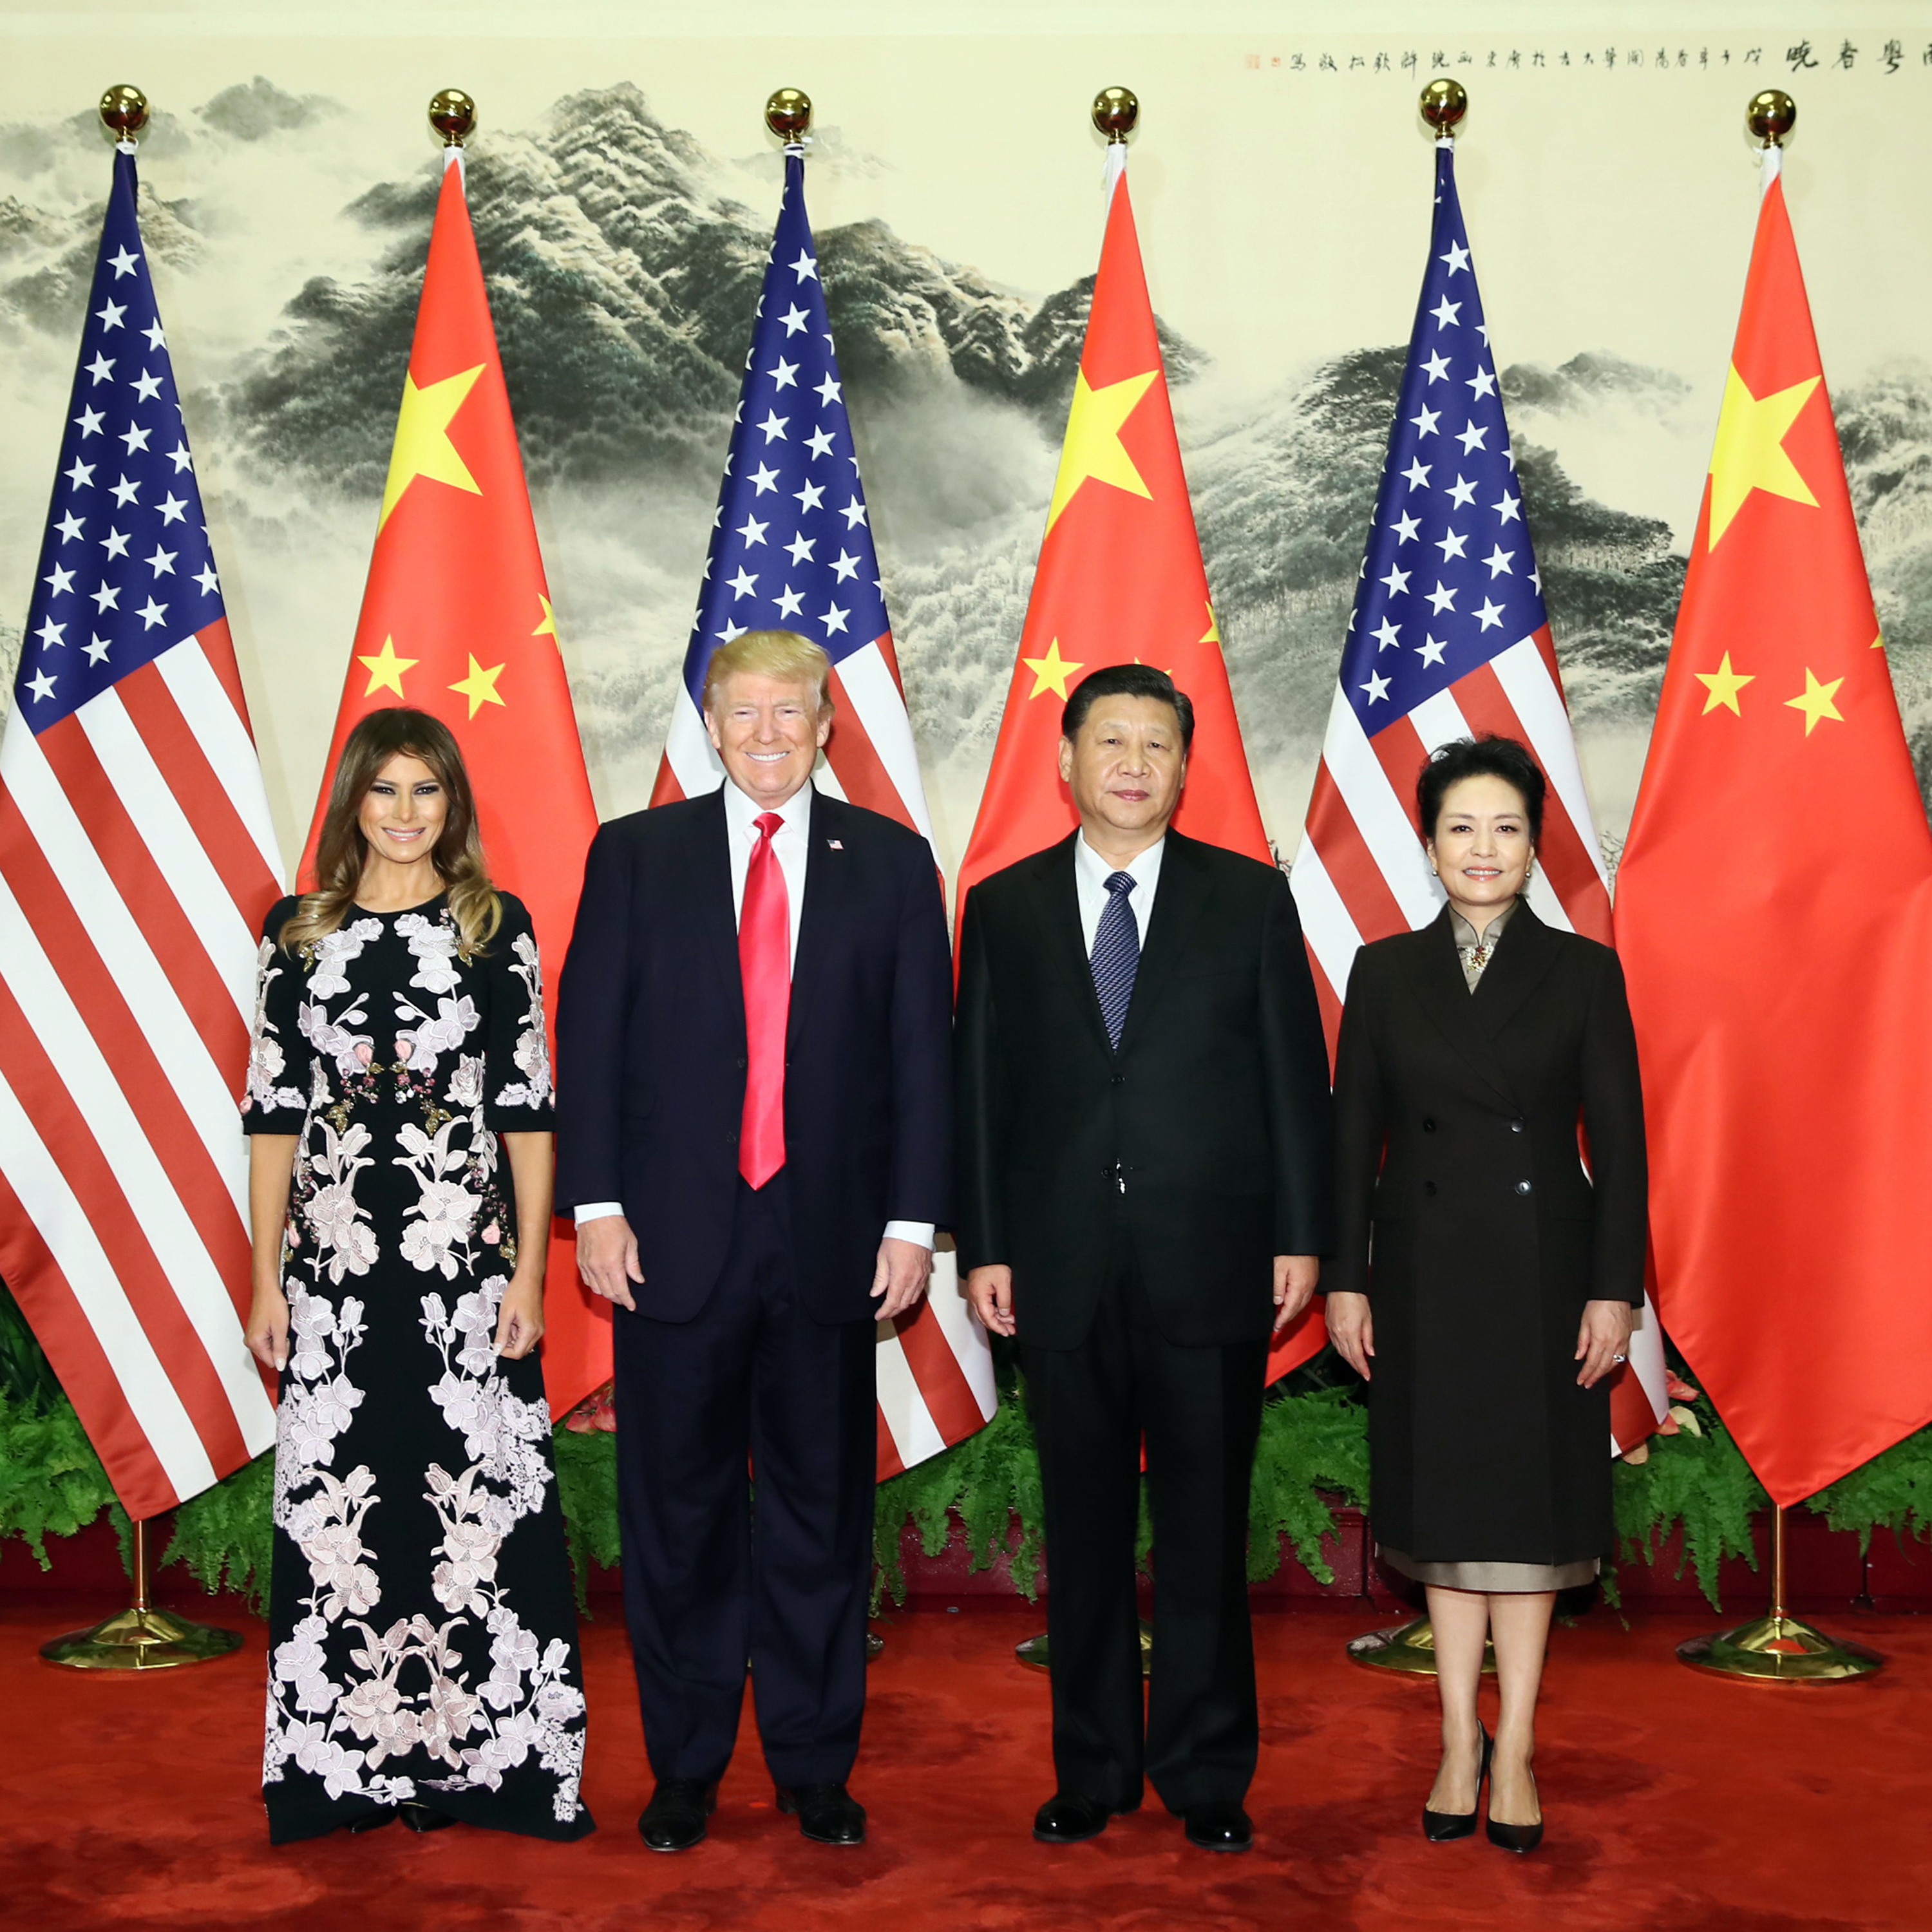 Chinese President Xi Jinping (2nd R) and his wife Peng Liyuan (1st R), and U.S. President Donald Trump (2nd L) and his wife Melania Trump pose for group photos at the Great Hall of the People in Beijing, capital of China, Nov. 9, 2017. Xi held a grand ceremony to welcome Trump on Thursday.